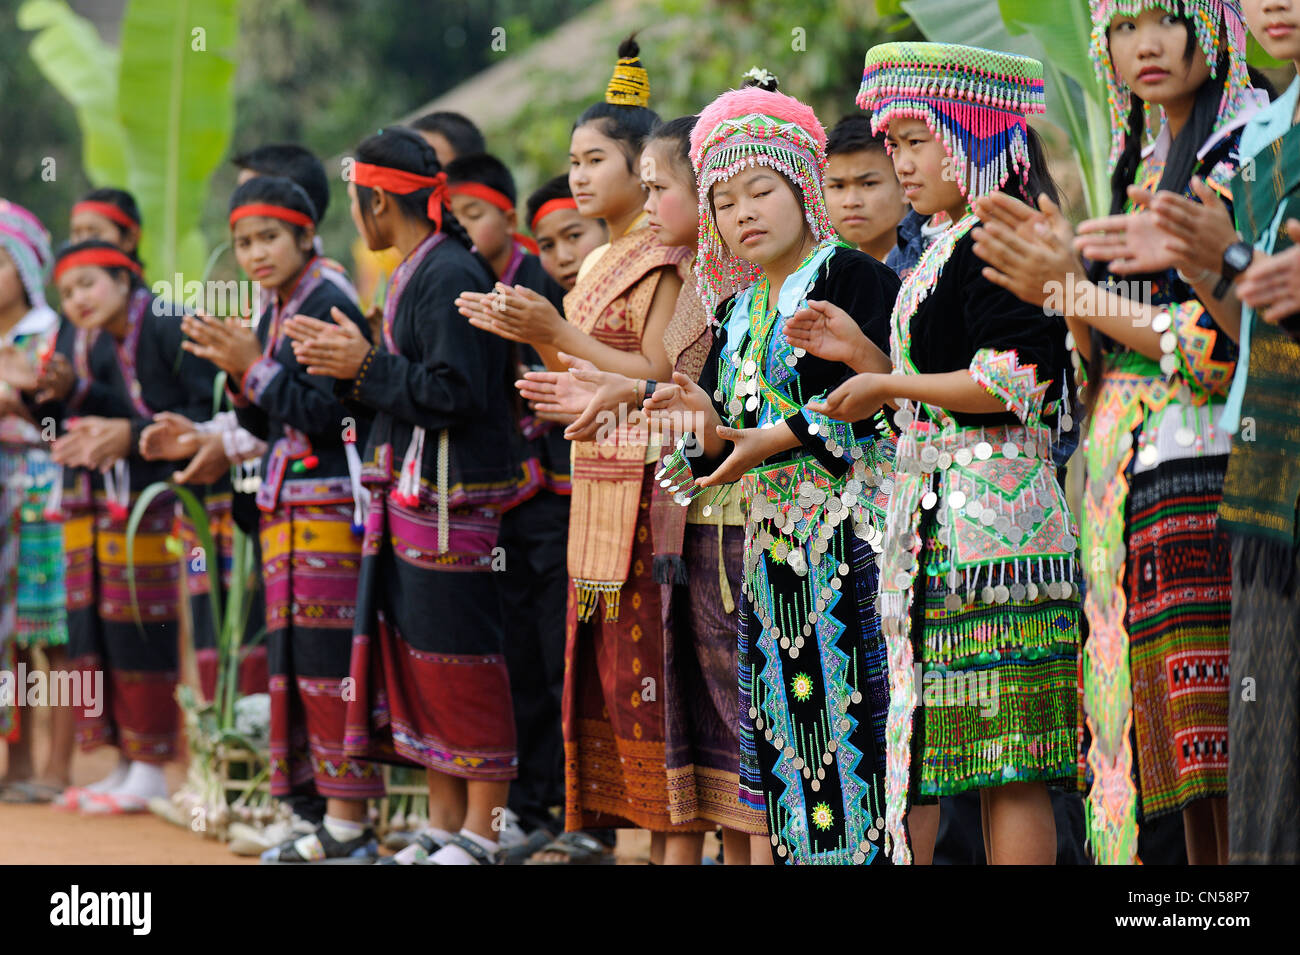 Laos, Sainyabuli Province, Hongsa, string of women in traditional costume at a ceremony - Stock Image